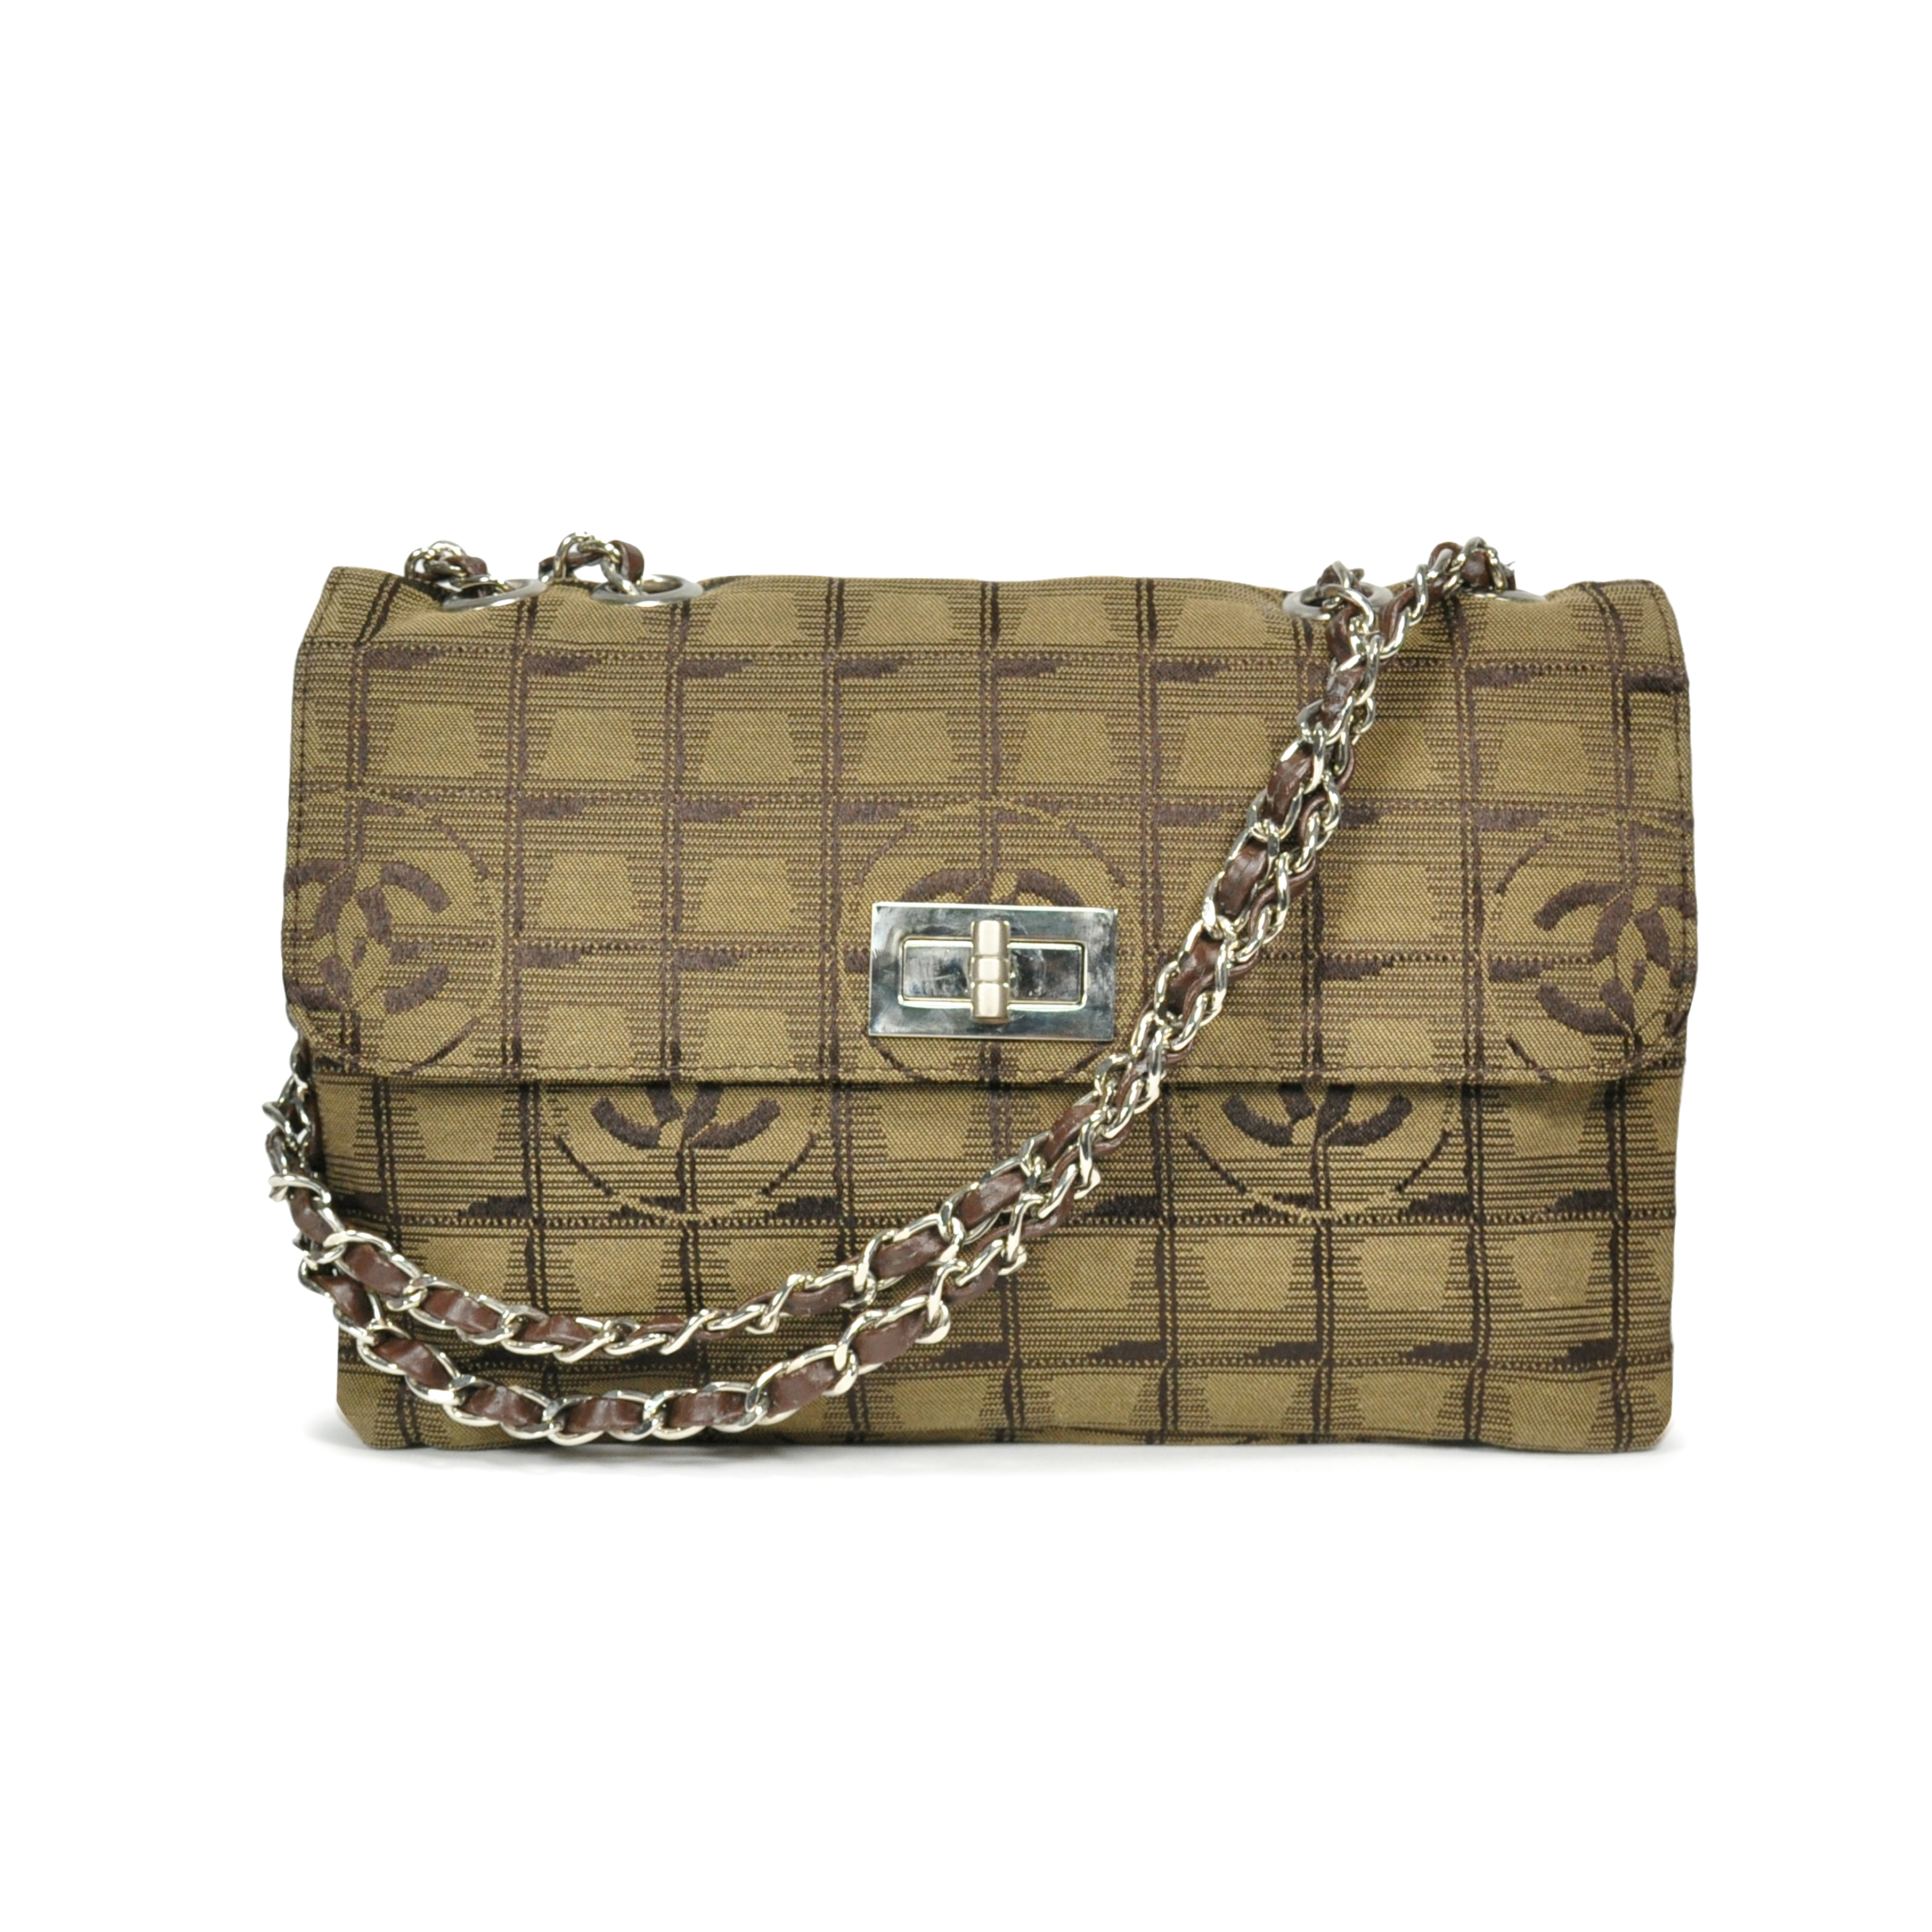 Authentic Pre Owned Chanel New Travel Line Flap Bag (PSS-200-00017 ... ddfdb5b8c725a